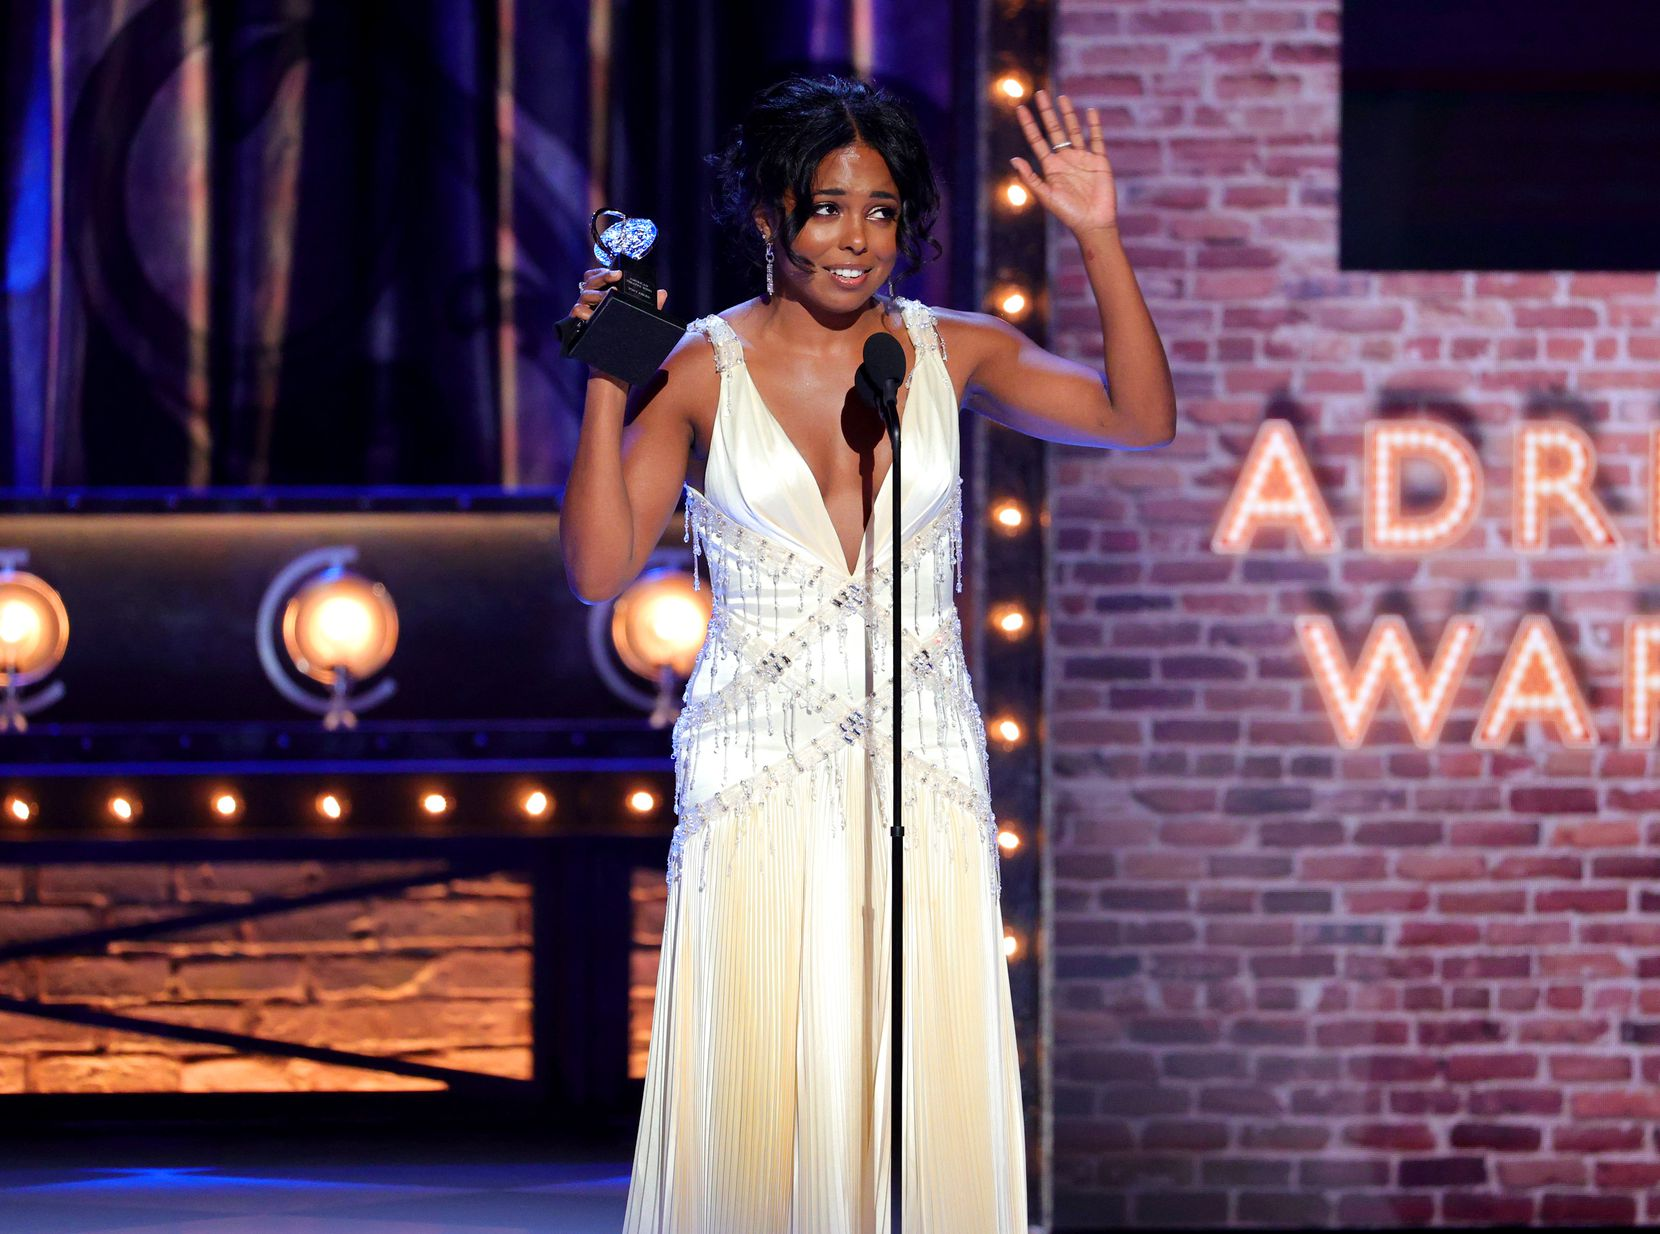 """Adrienne Warren won  best actress in a musical for """"Tina - The Tina Turner Musical"""" at  the 74th Annual Tony Awards on Sunday night. (Photo by Theo Wargo/Getty Images for Tony Awards Productions)"""